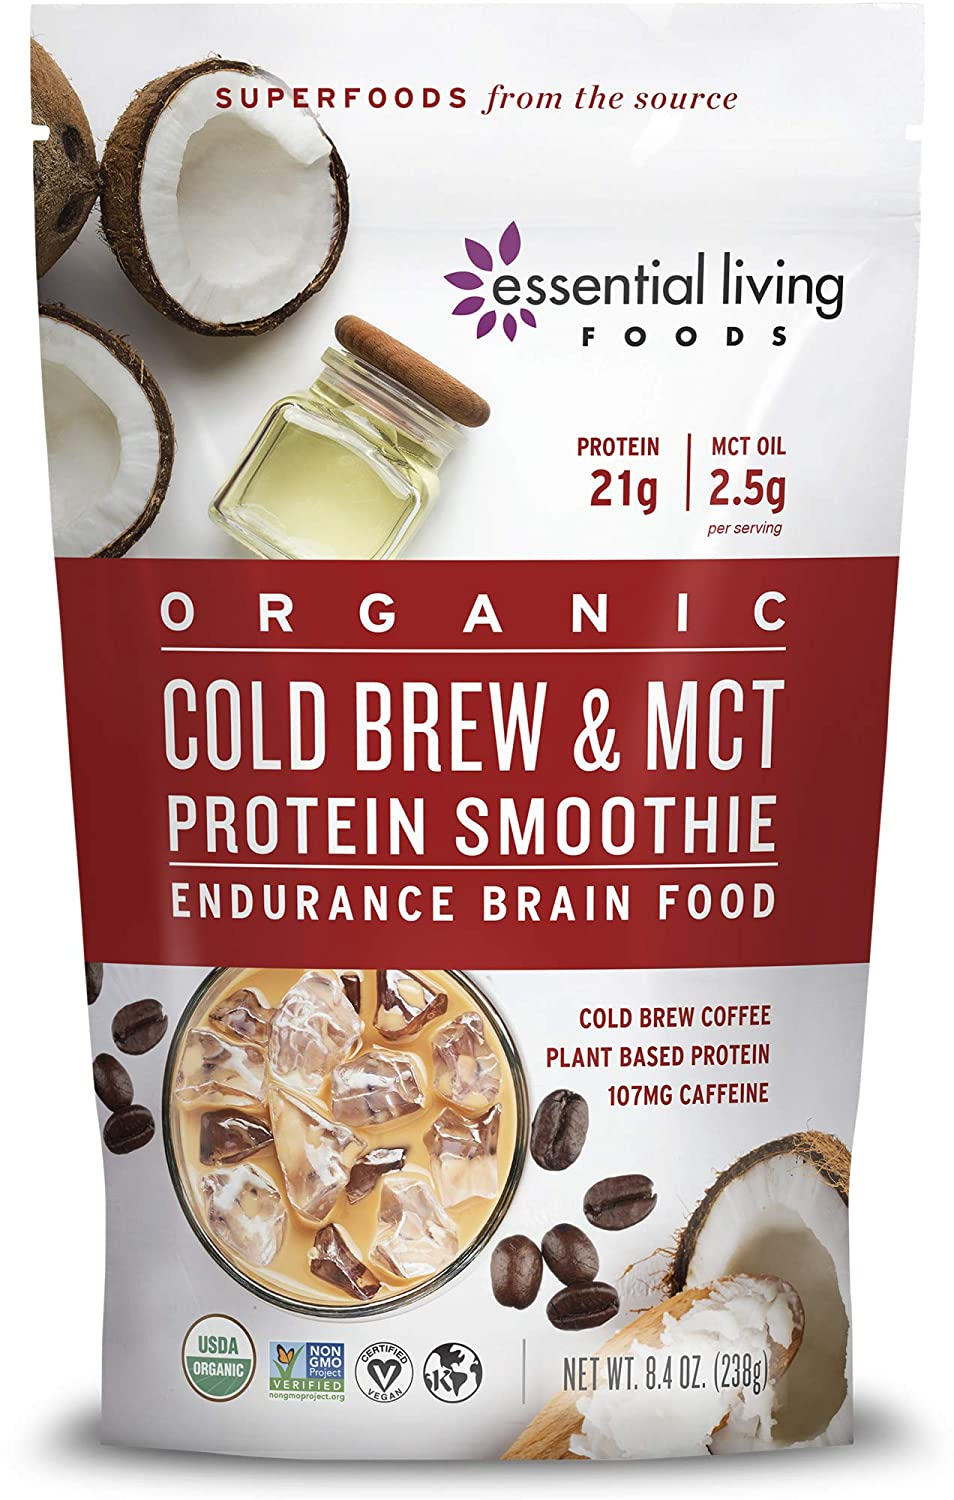 Essential Living Foods - Organic Cold Brew & MCT Plant Based Coffee Protein Powder - Vegan Protein Powder, Gluten Free, Dairy Free, Soy Free, Non GMO (7 Servings, 8.4oz) x 6 pack Resealable Bags